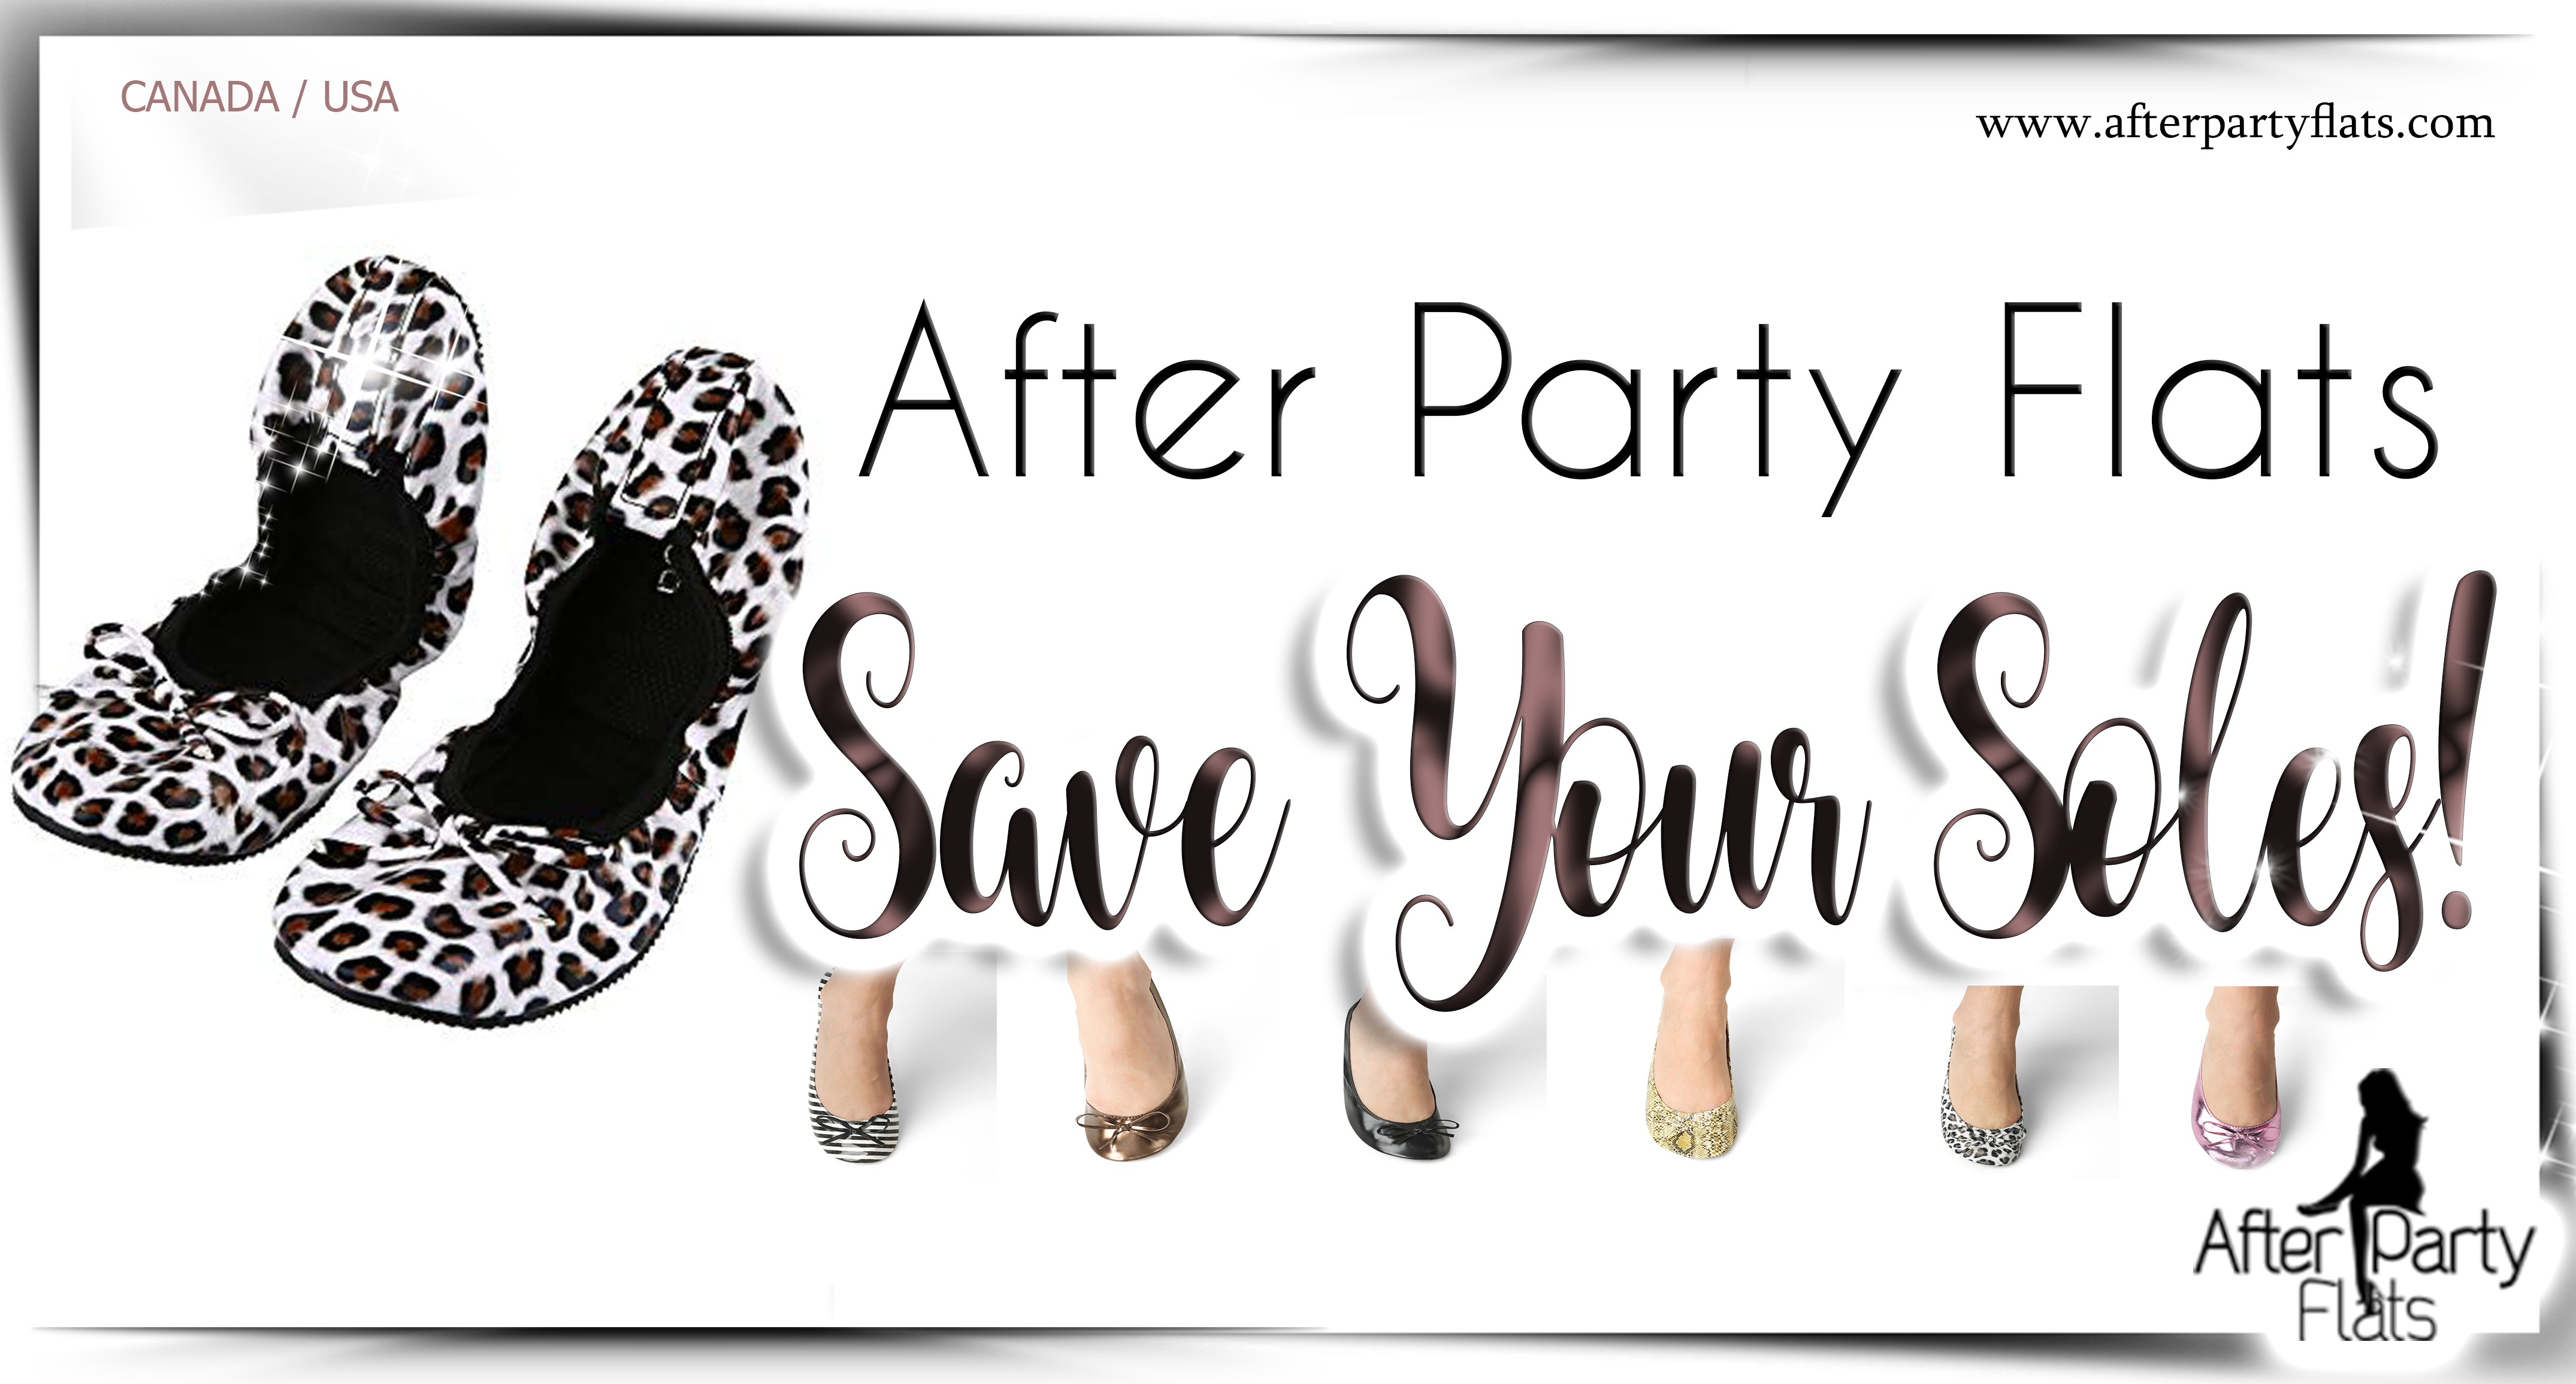 AFTER PARTY FLATS FB COVER PLAIN SHOES 1